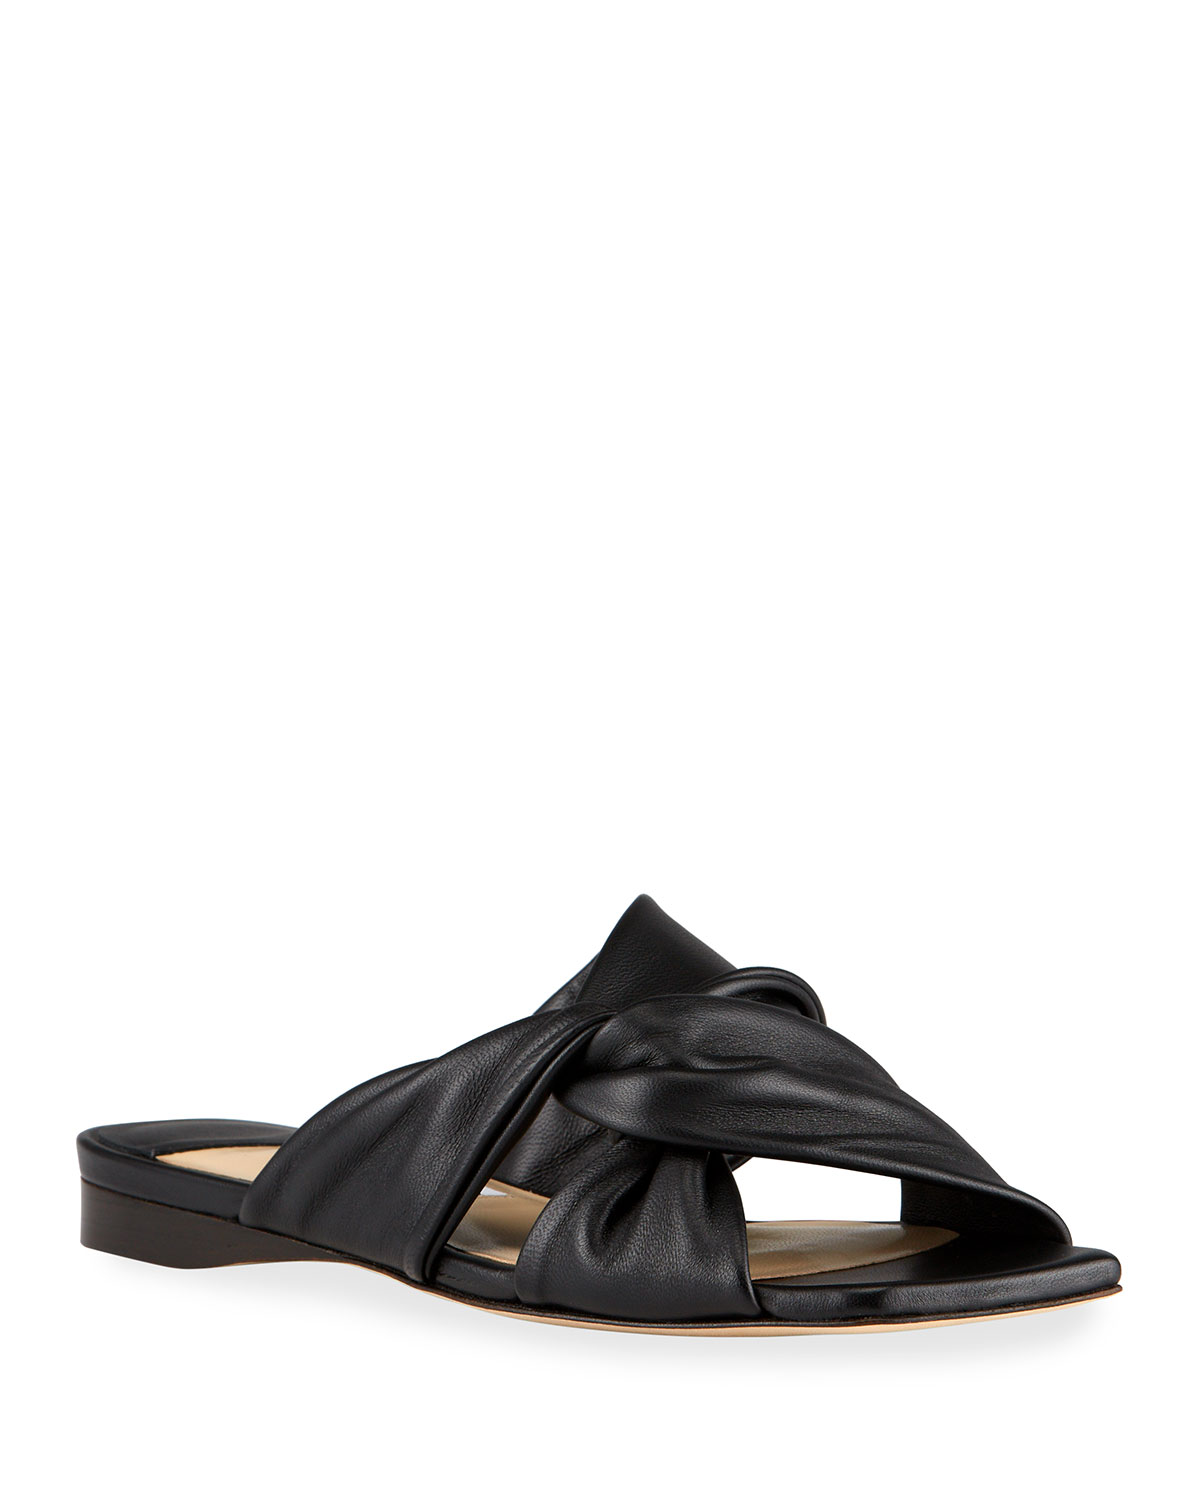 Narisa Knotted Leather Flat Sandals